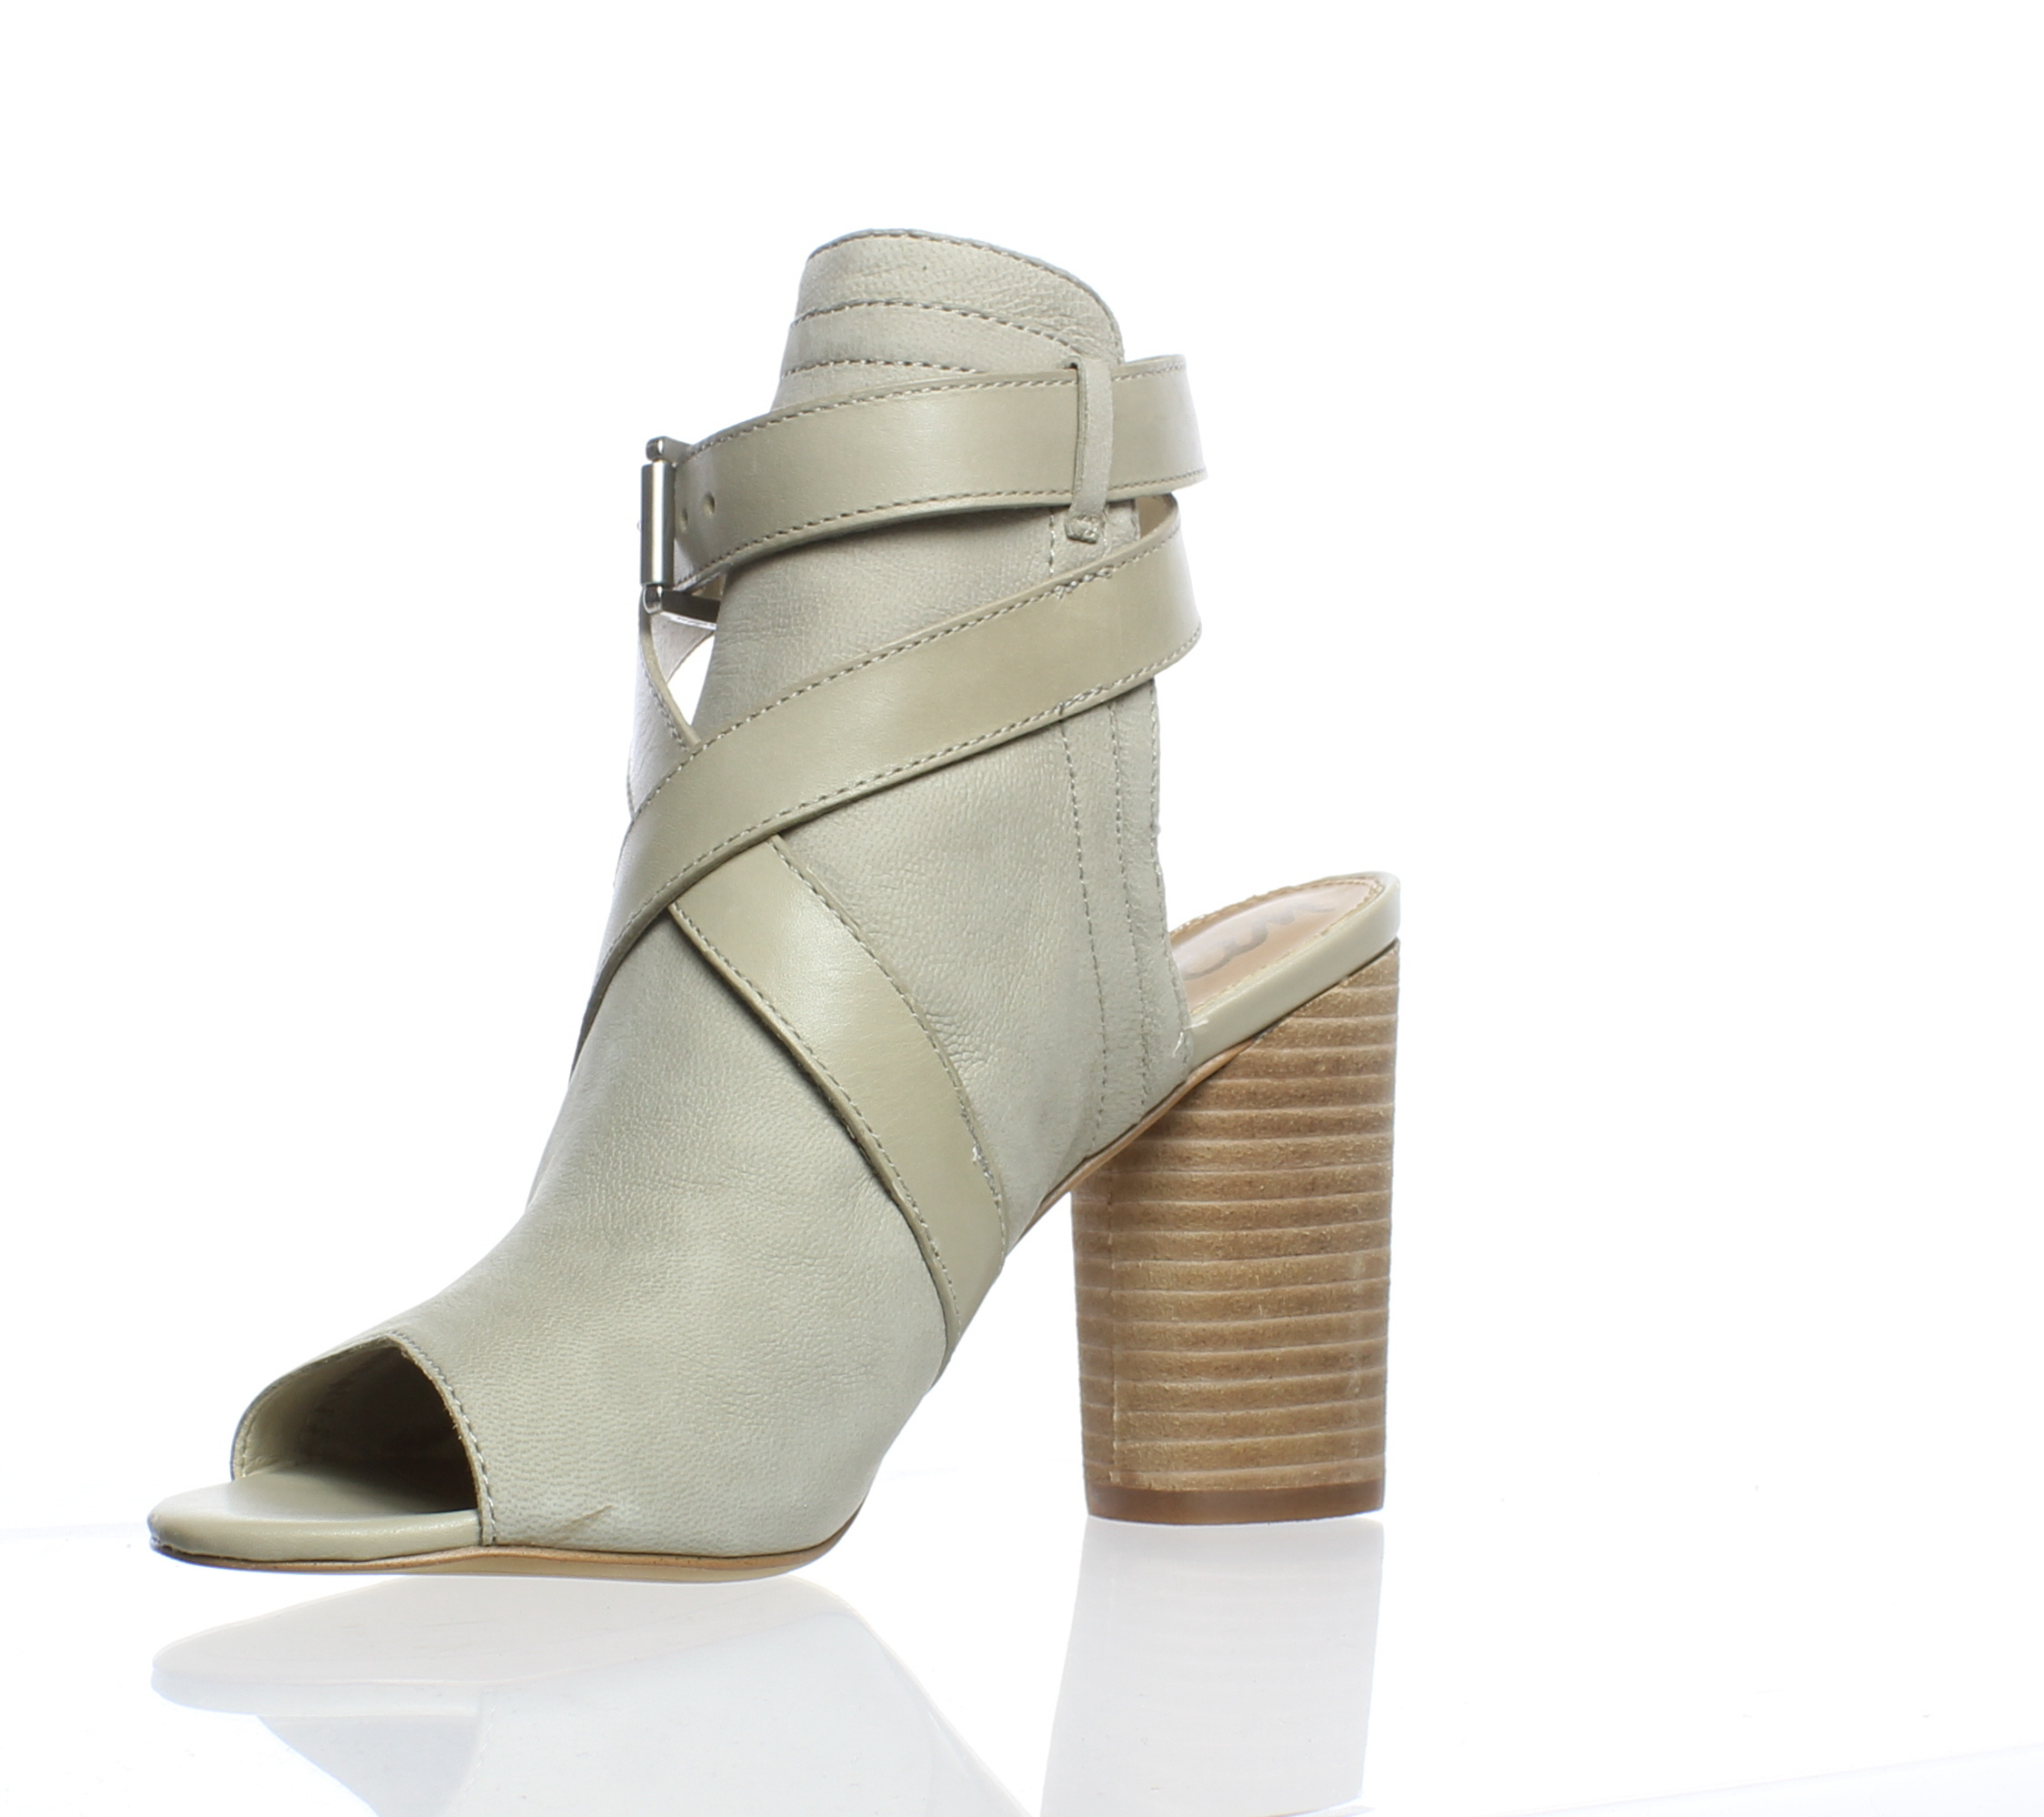 583e71a51 Sam Edelman WOMENS Vermont Taupe Ankle Strap Heels Size 5.5 (183520)